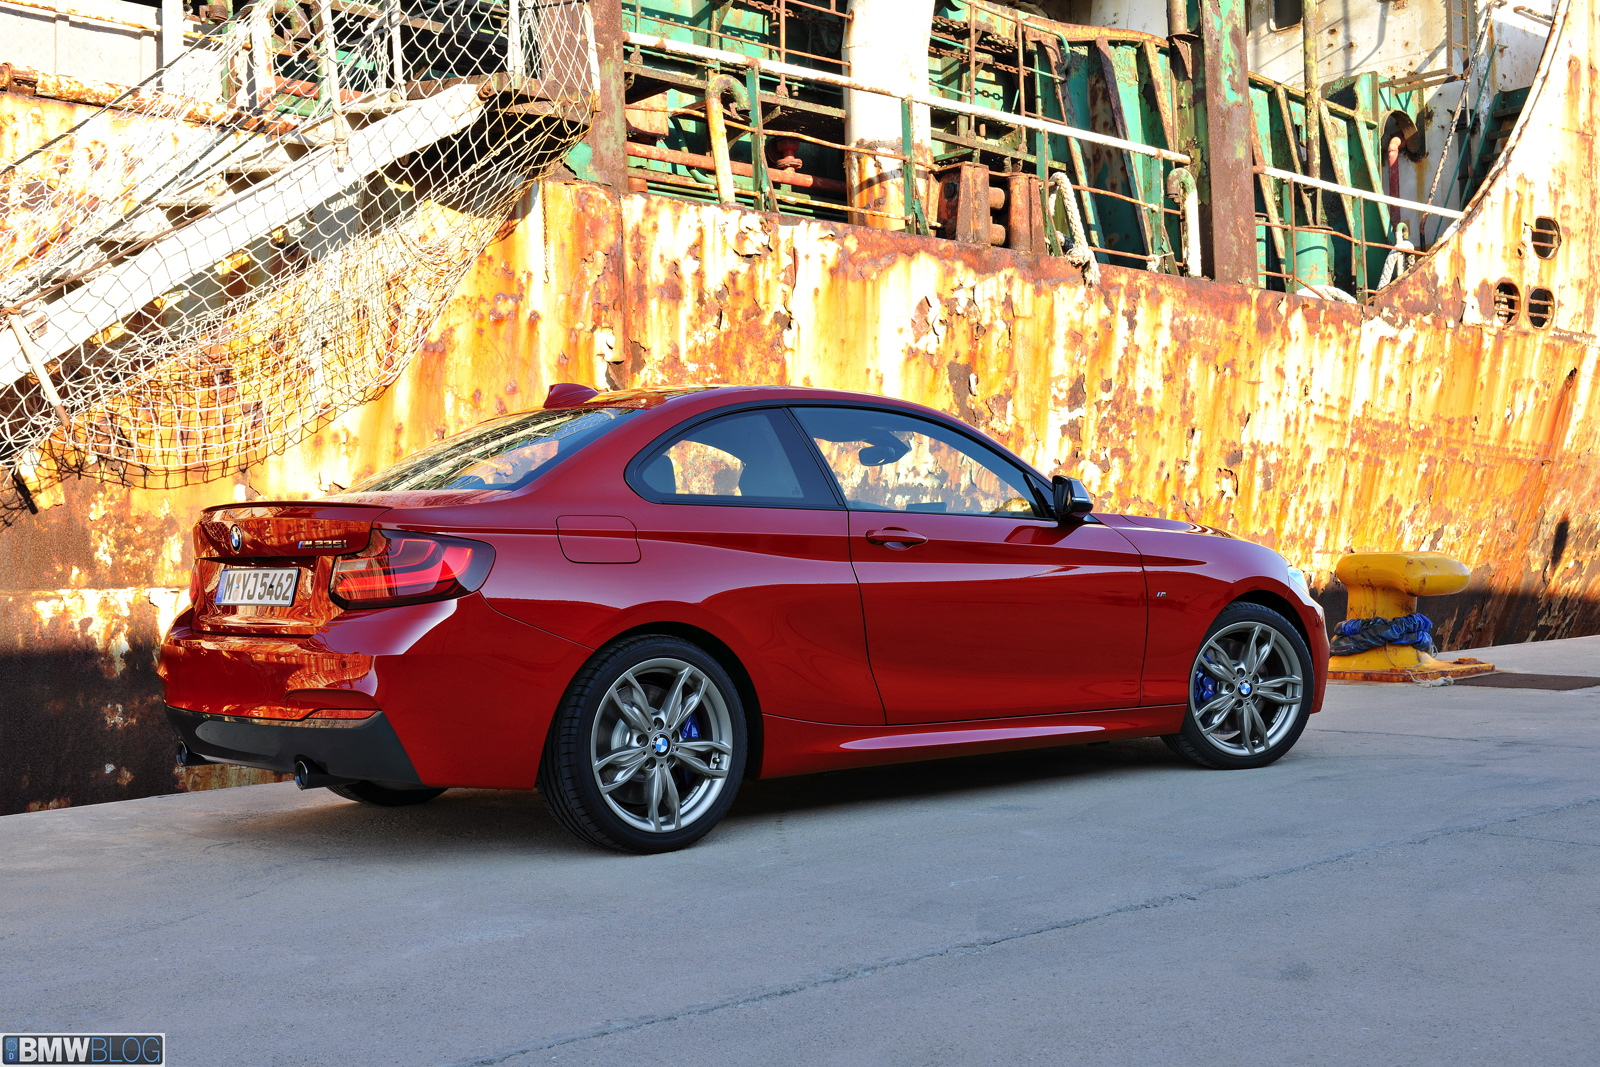 BMW 2 Series Coupe production starts today